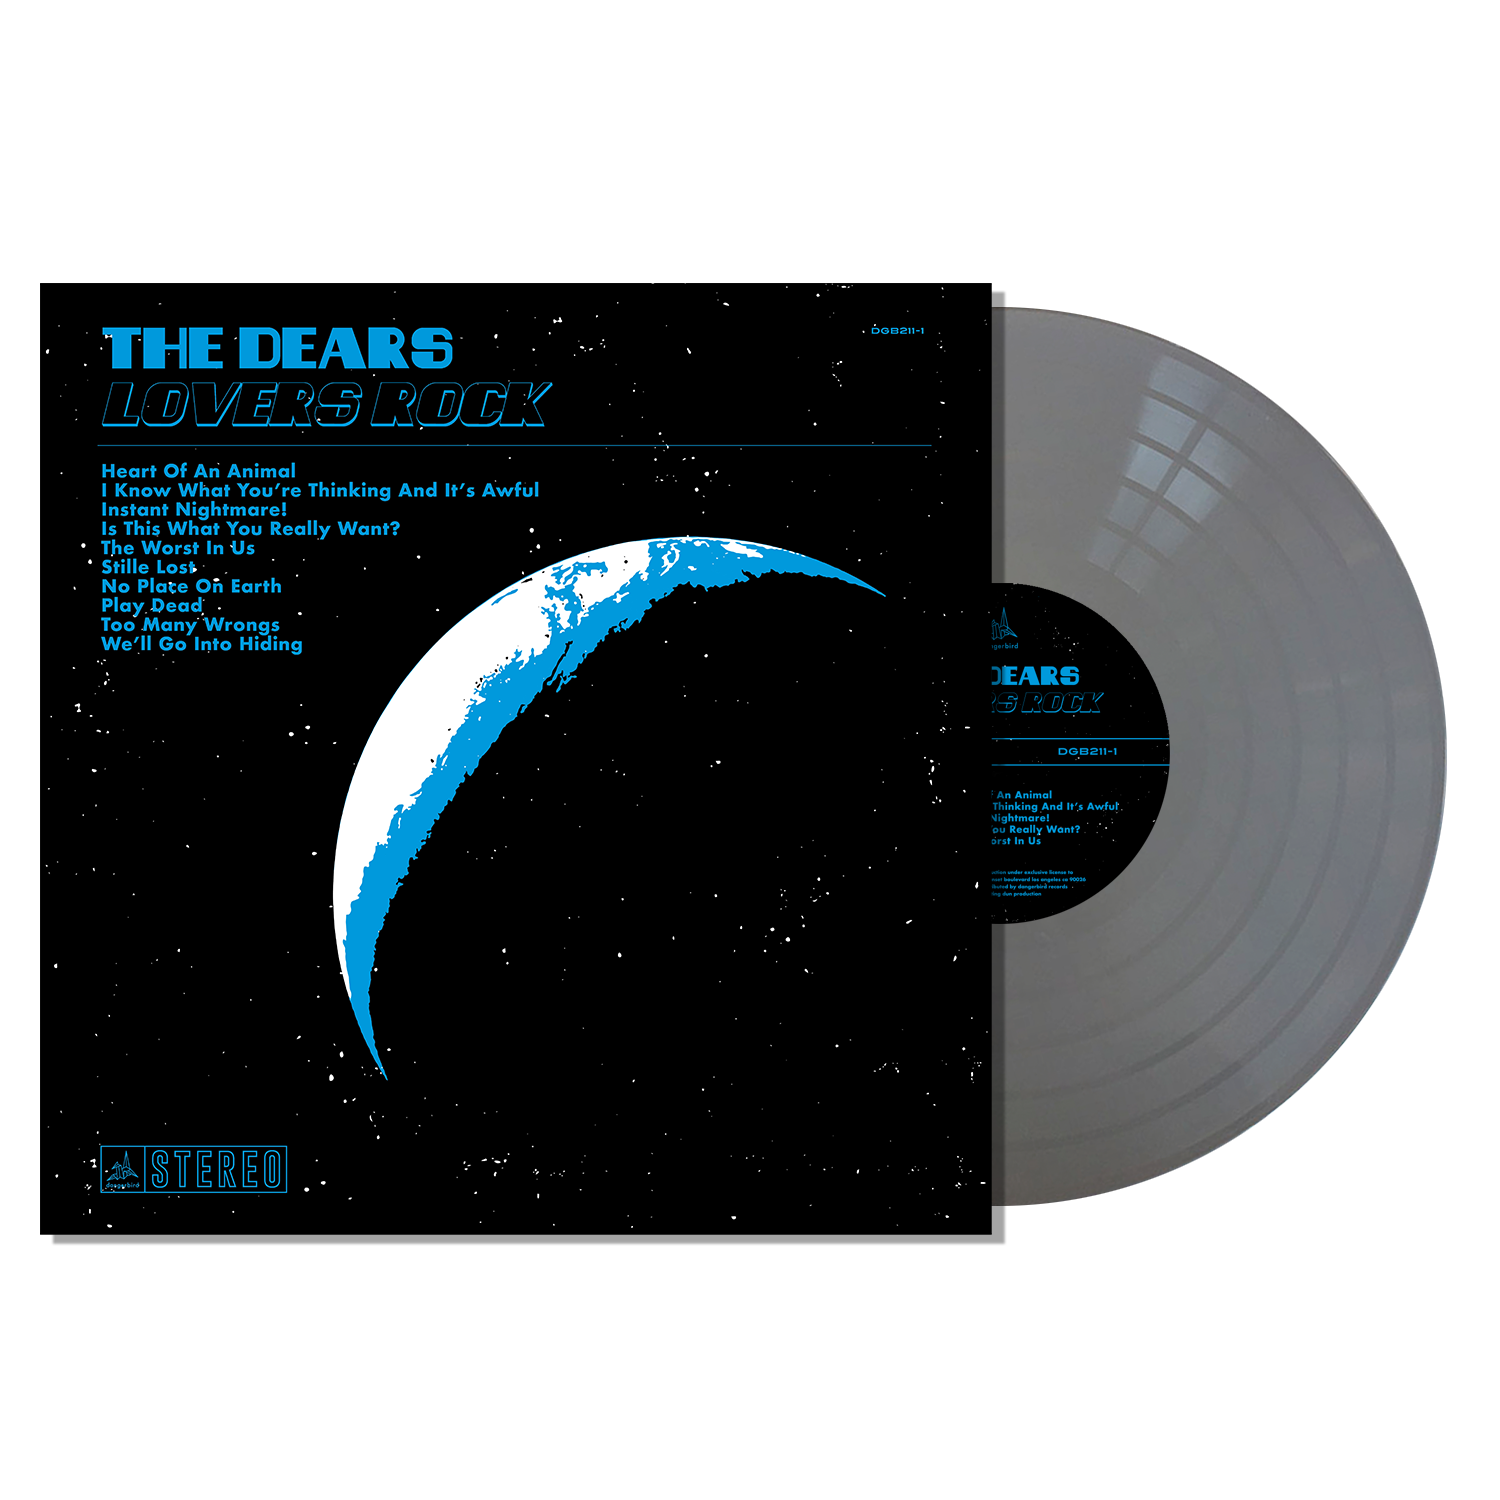 The Dears - Lovers Rock - Metallic Silver LP Bundle